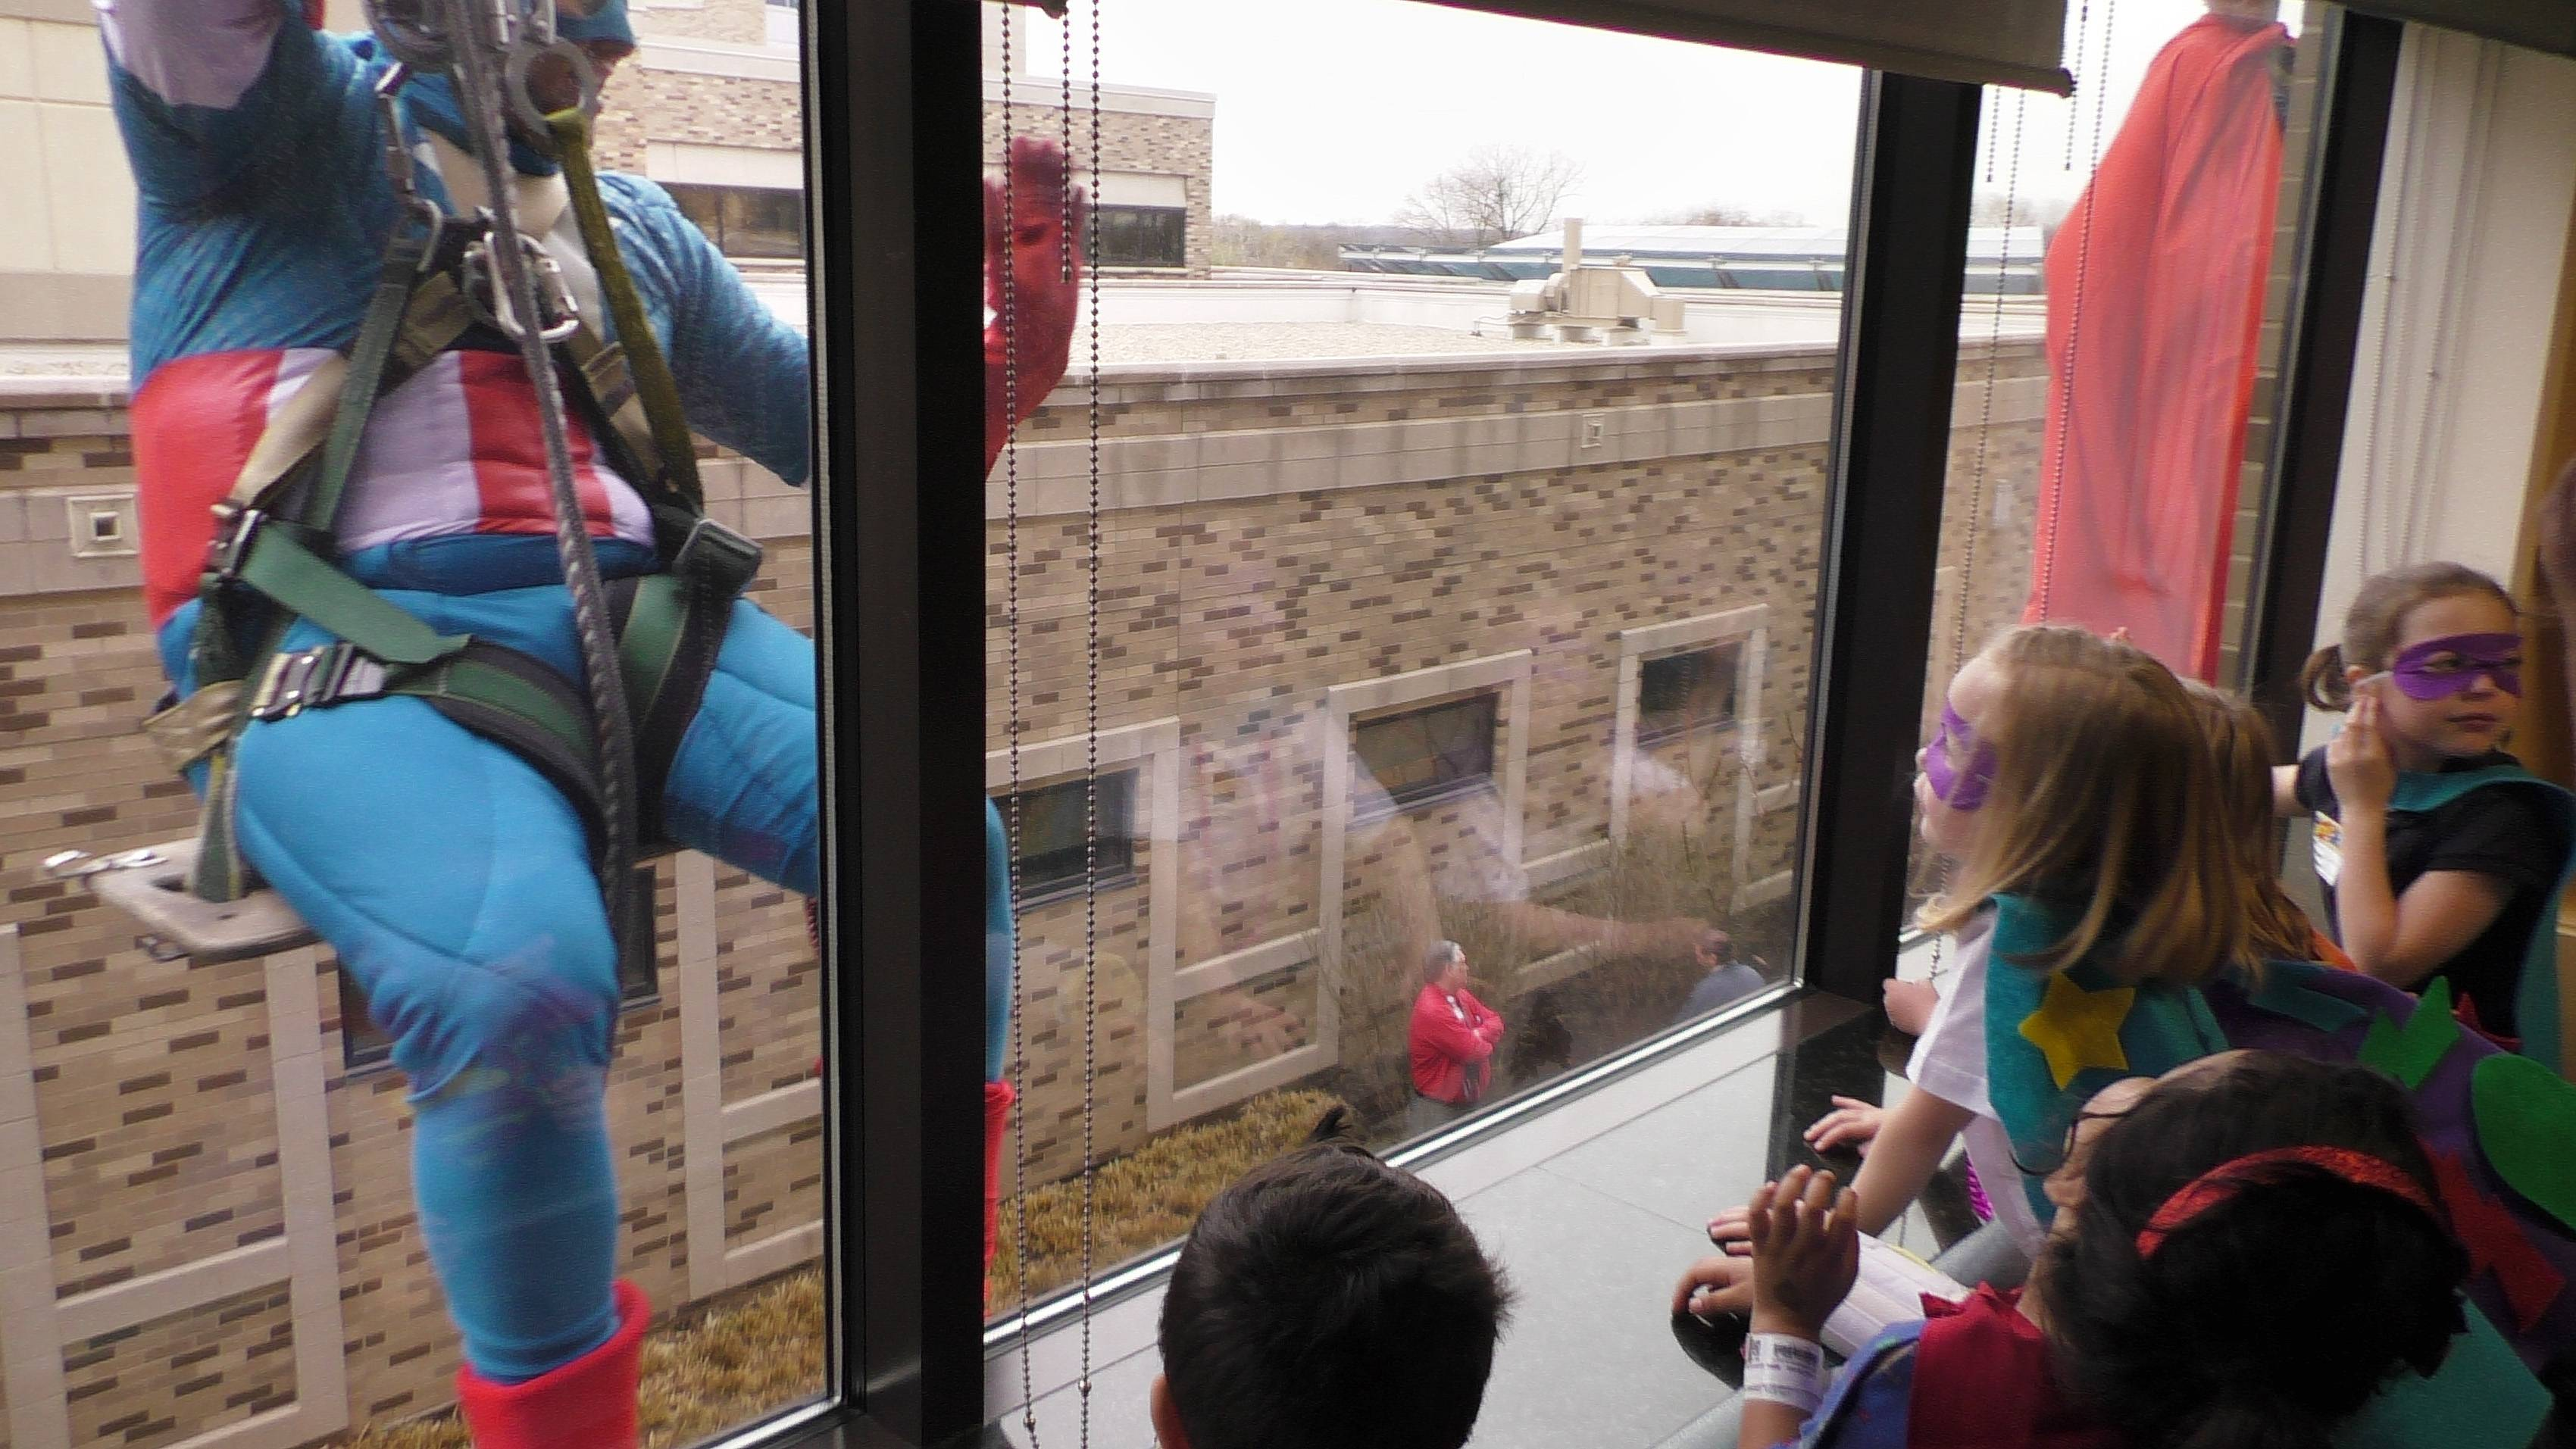 A window washer dressed as Captain America brings smiles to the face of past and current pediatric patients at Central DuPage Hospital Monday in celebration of National Superhero Day.